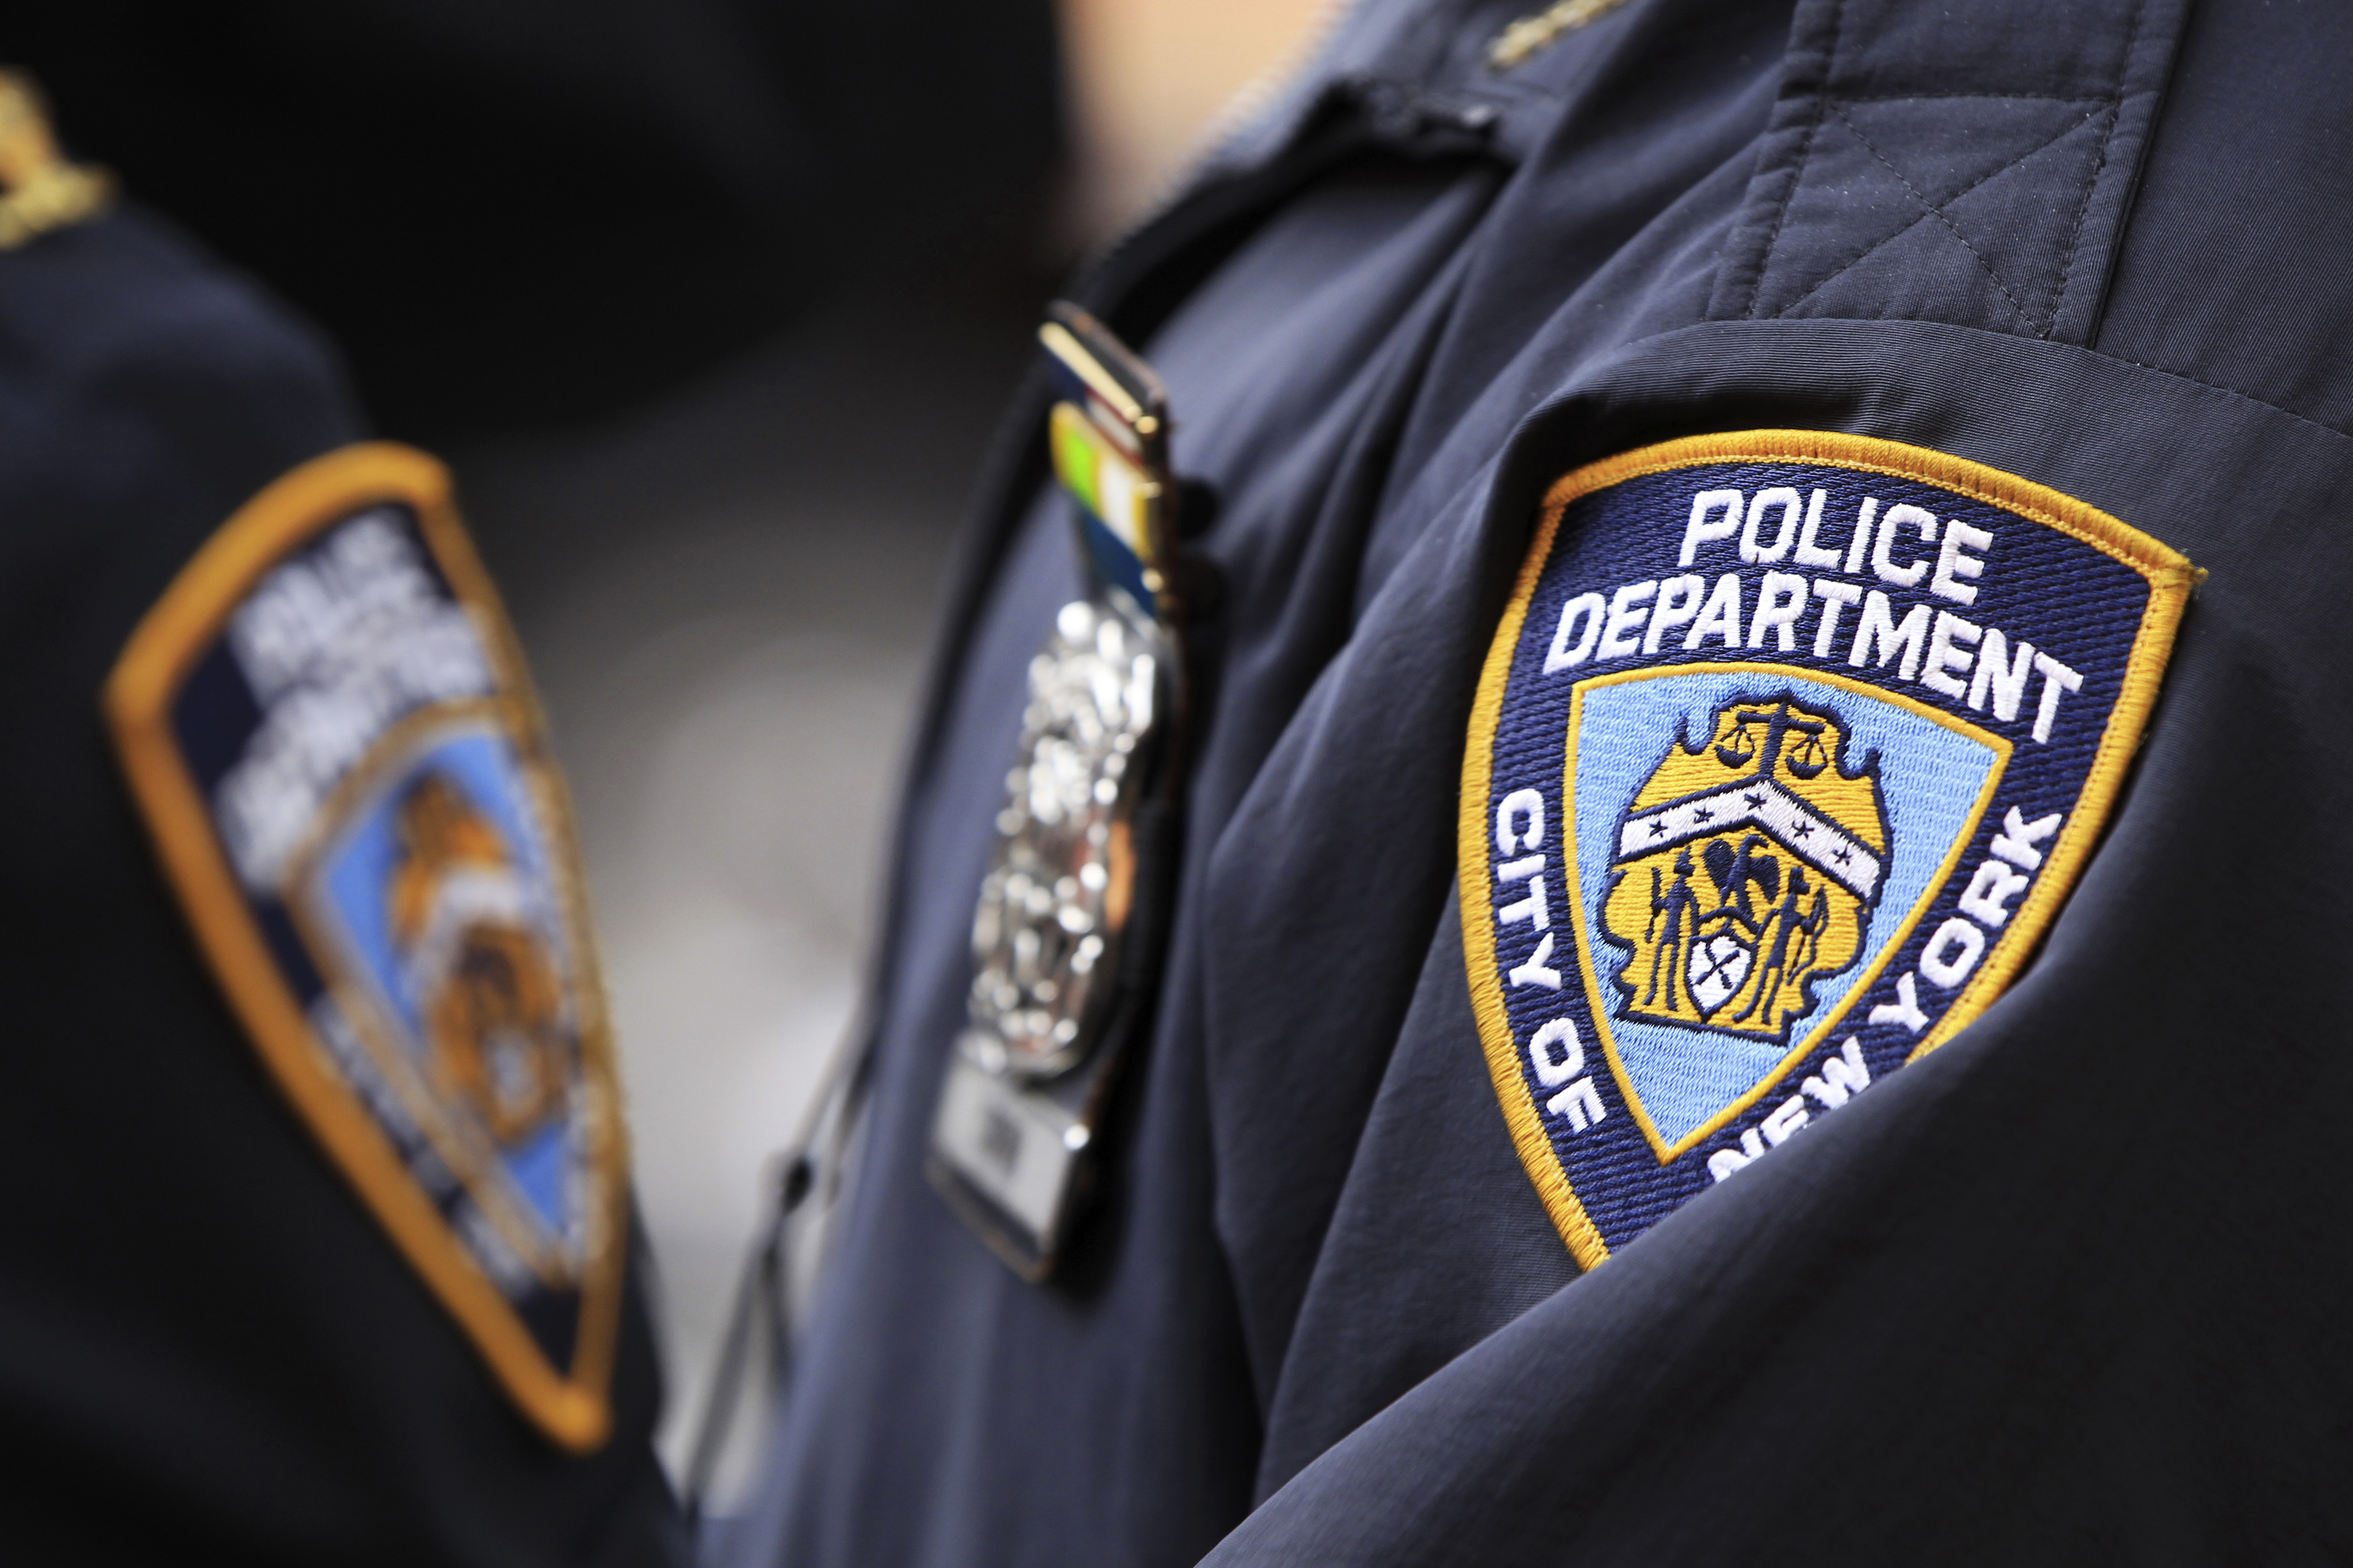 NYPD sergeant accused of assaulting man who allegedly hurled racial slur at him